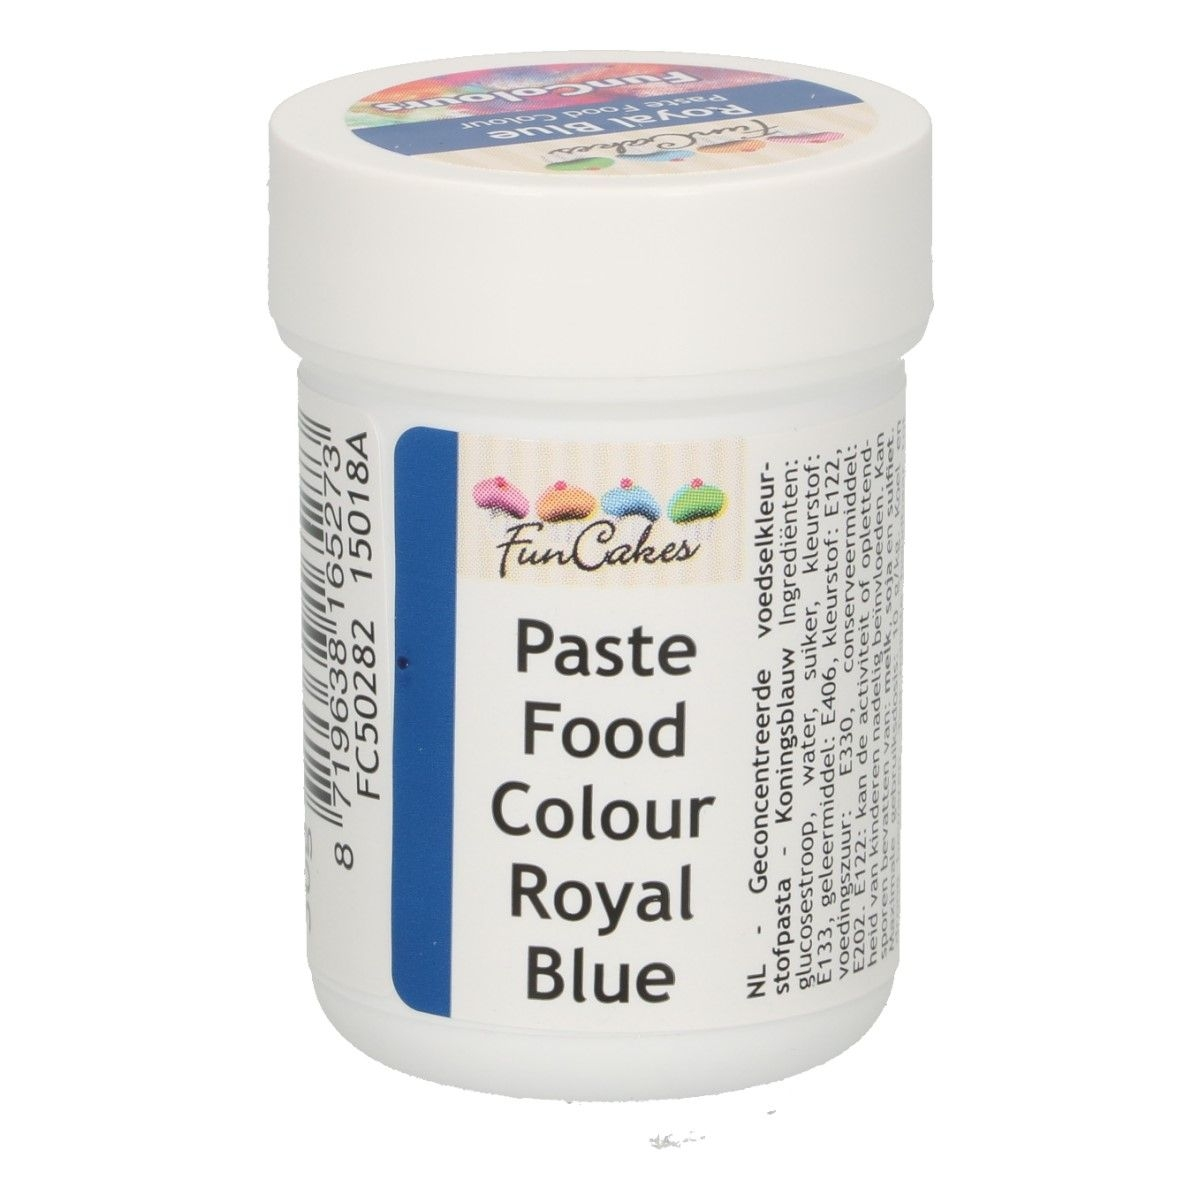 /f/u/funcakes_funcolours_paste_food_colour_-_royal_blue.jpg